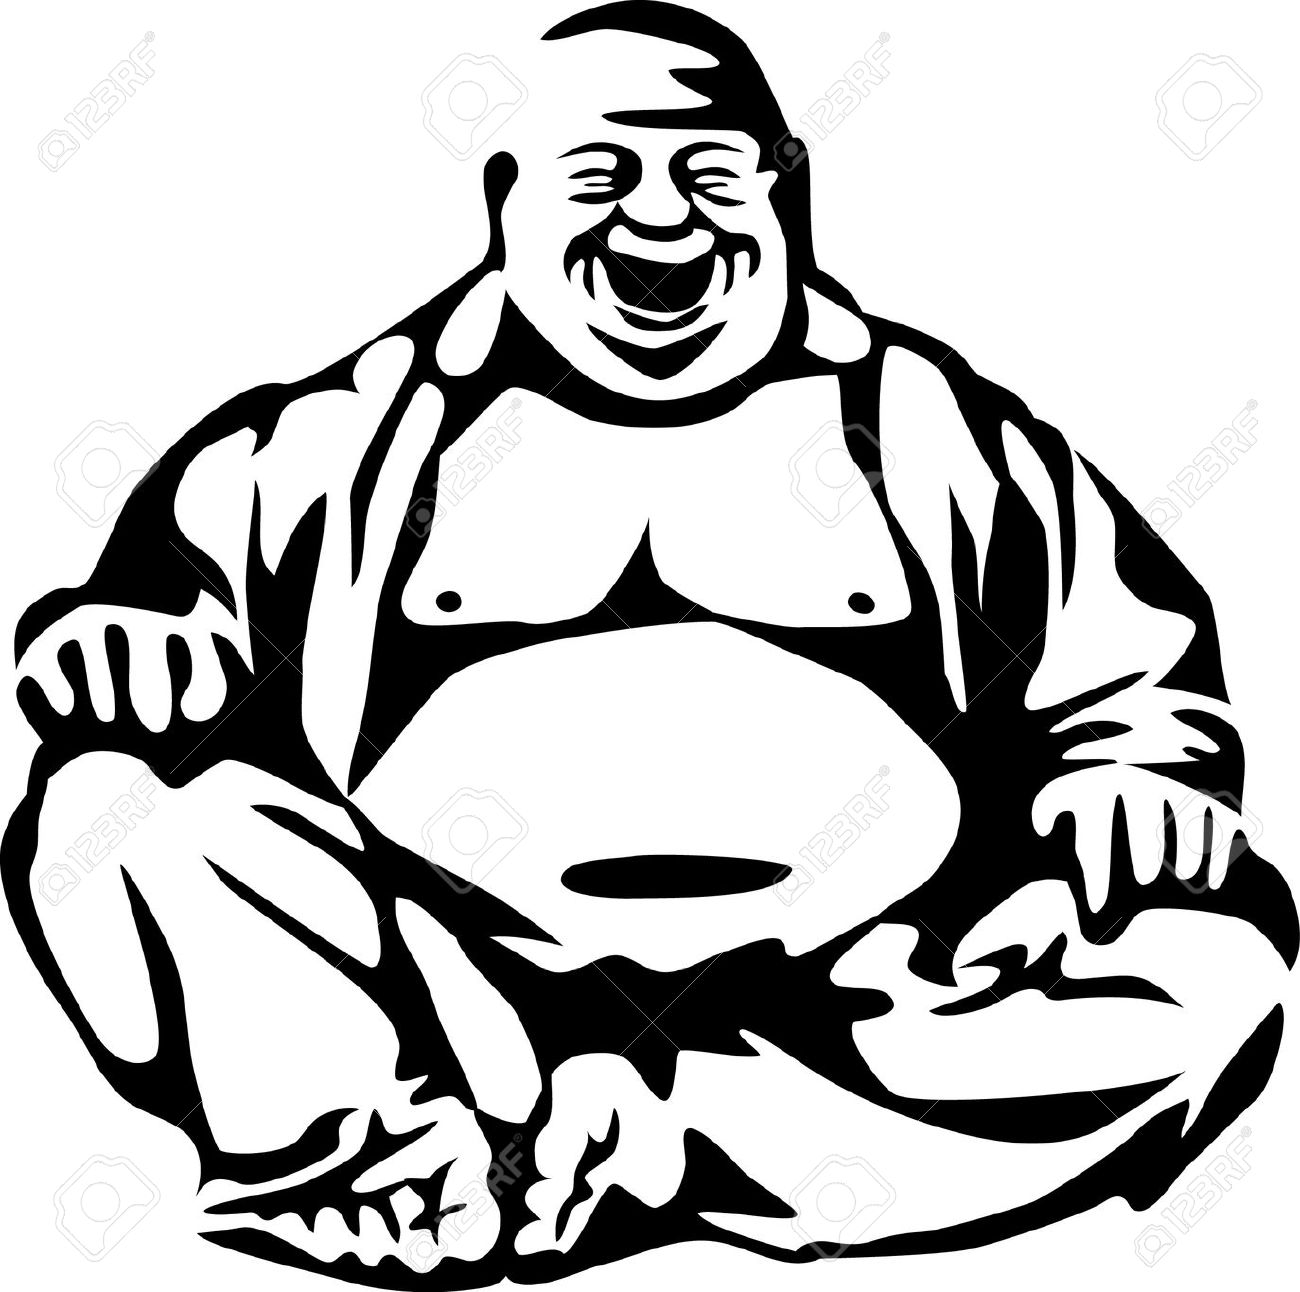 Laughing buddha clipart picture library library Laughing buddha clipart - ClipartFest picture library library